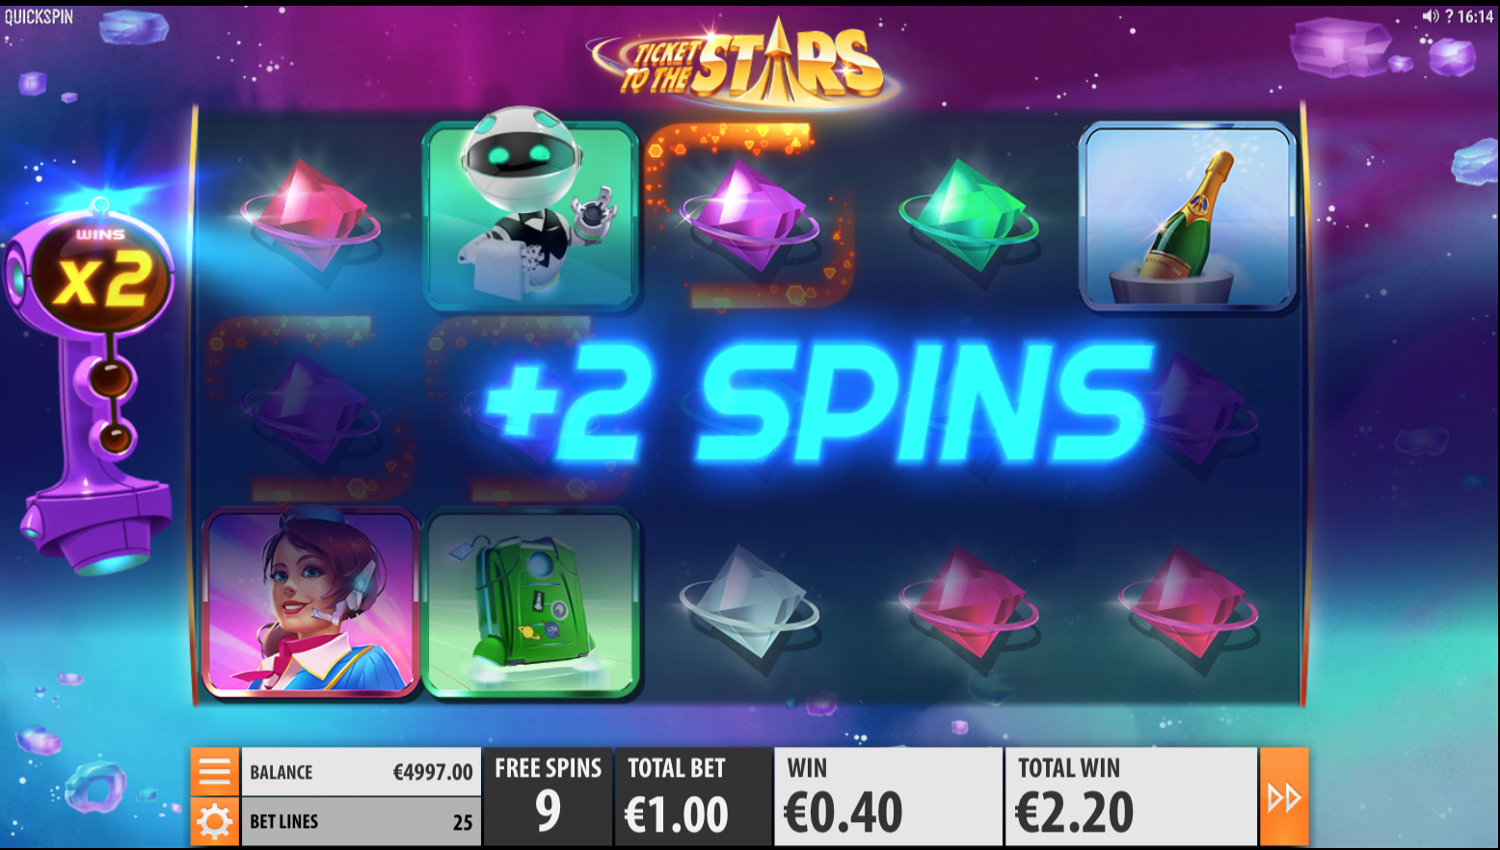 Ticket to the Stars extra spins won